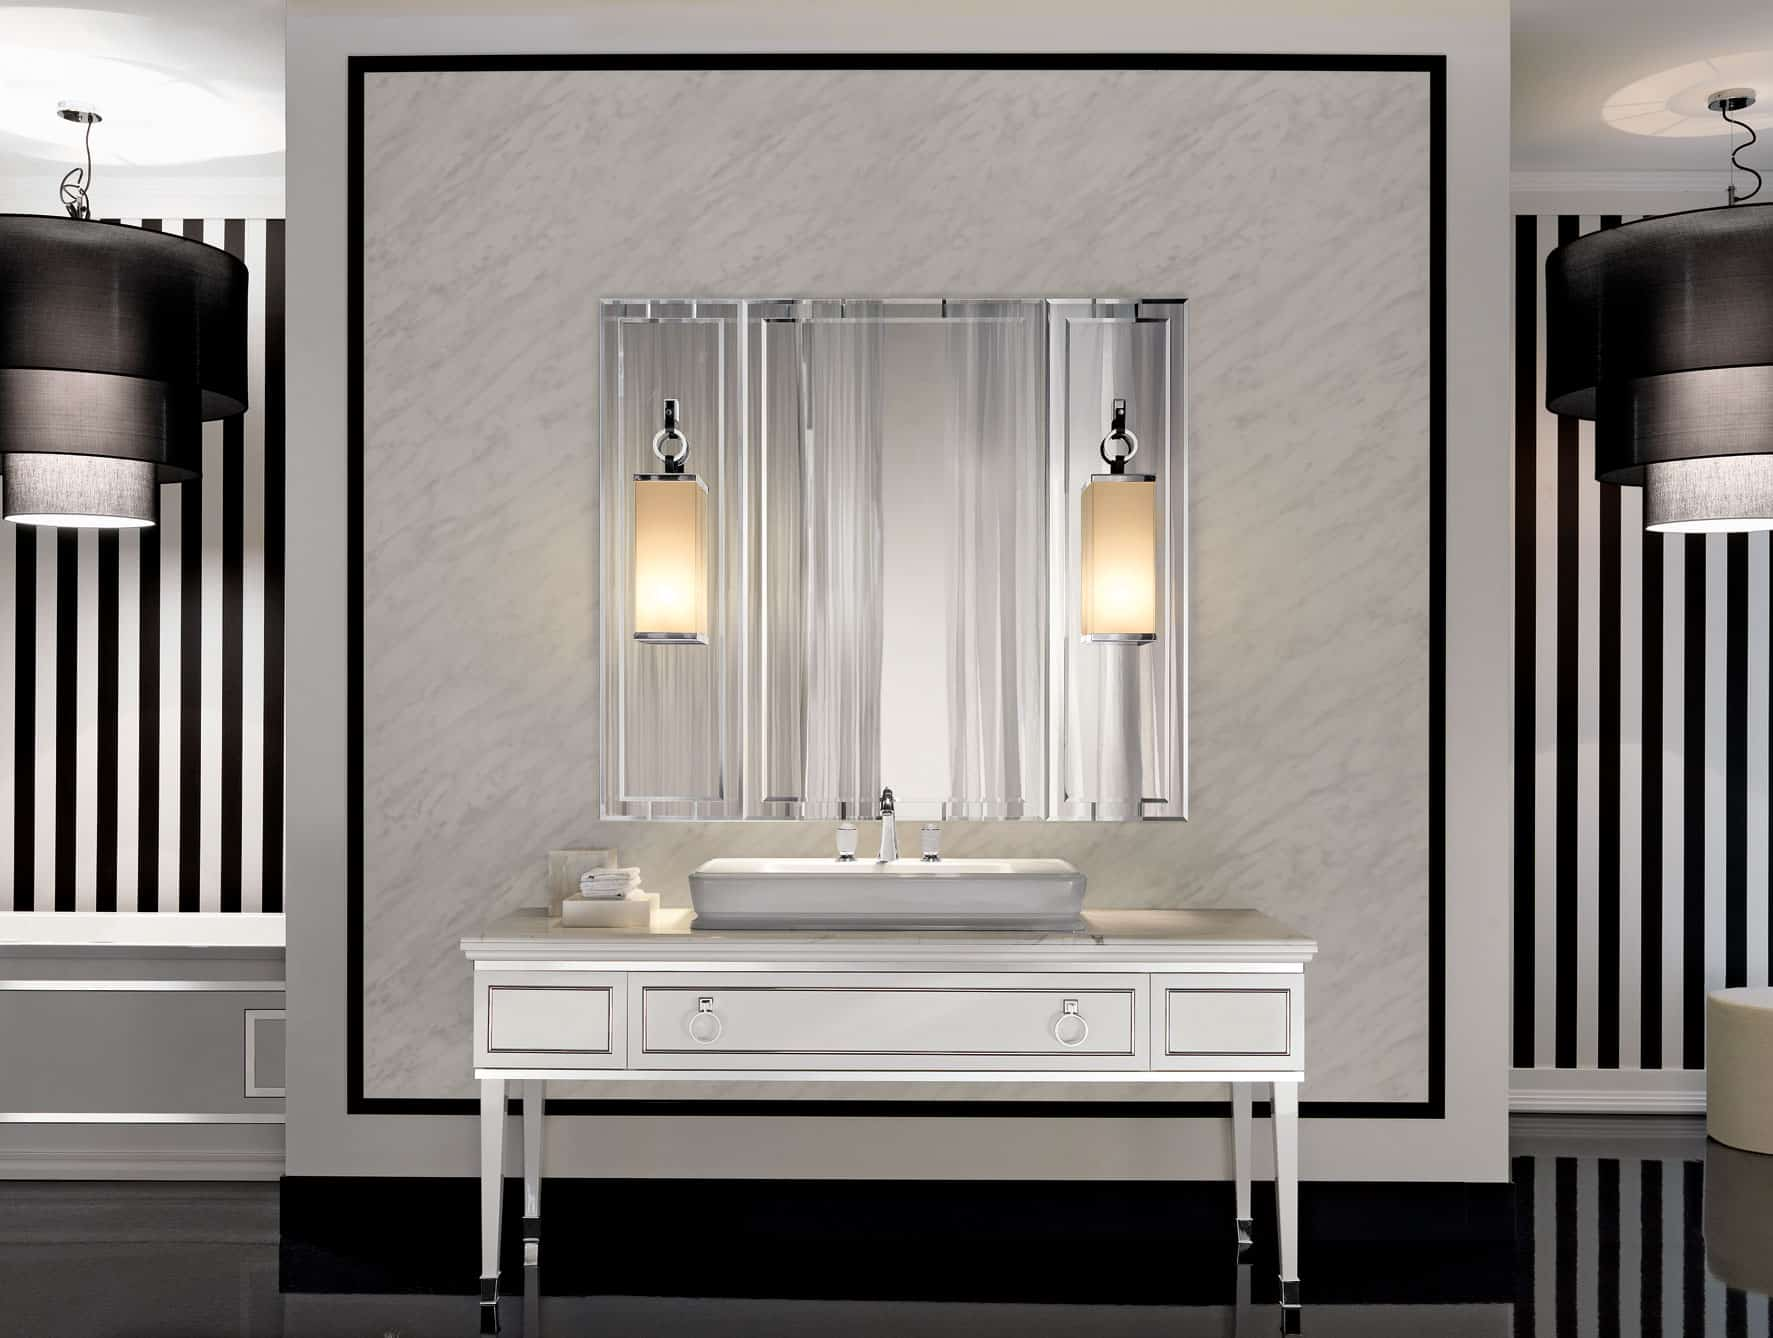 Bathroom lighting ideas for every style - Art deco bathroom lighting fixtures ...